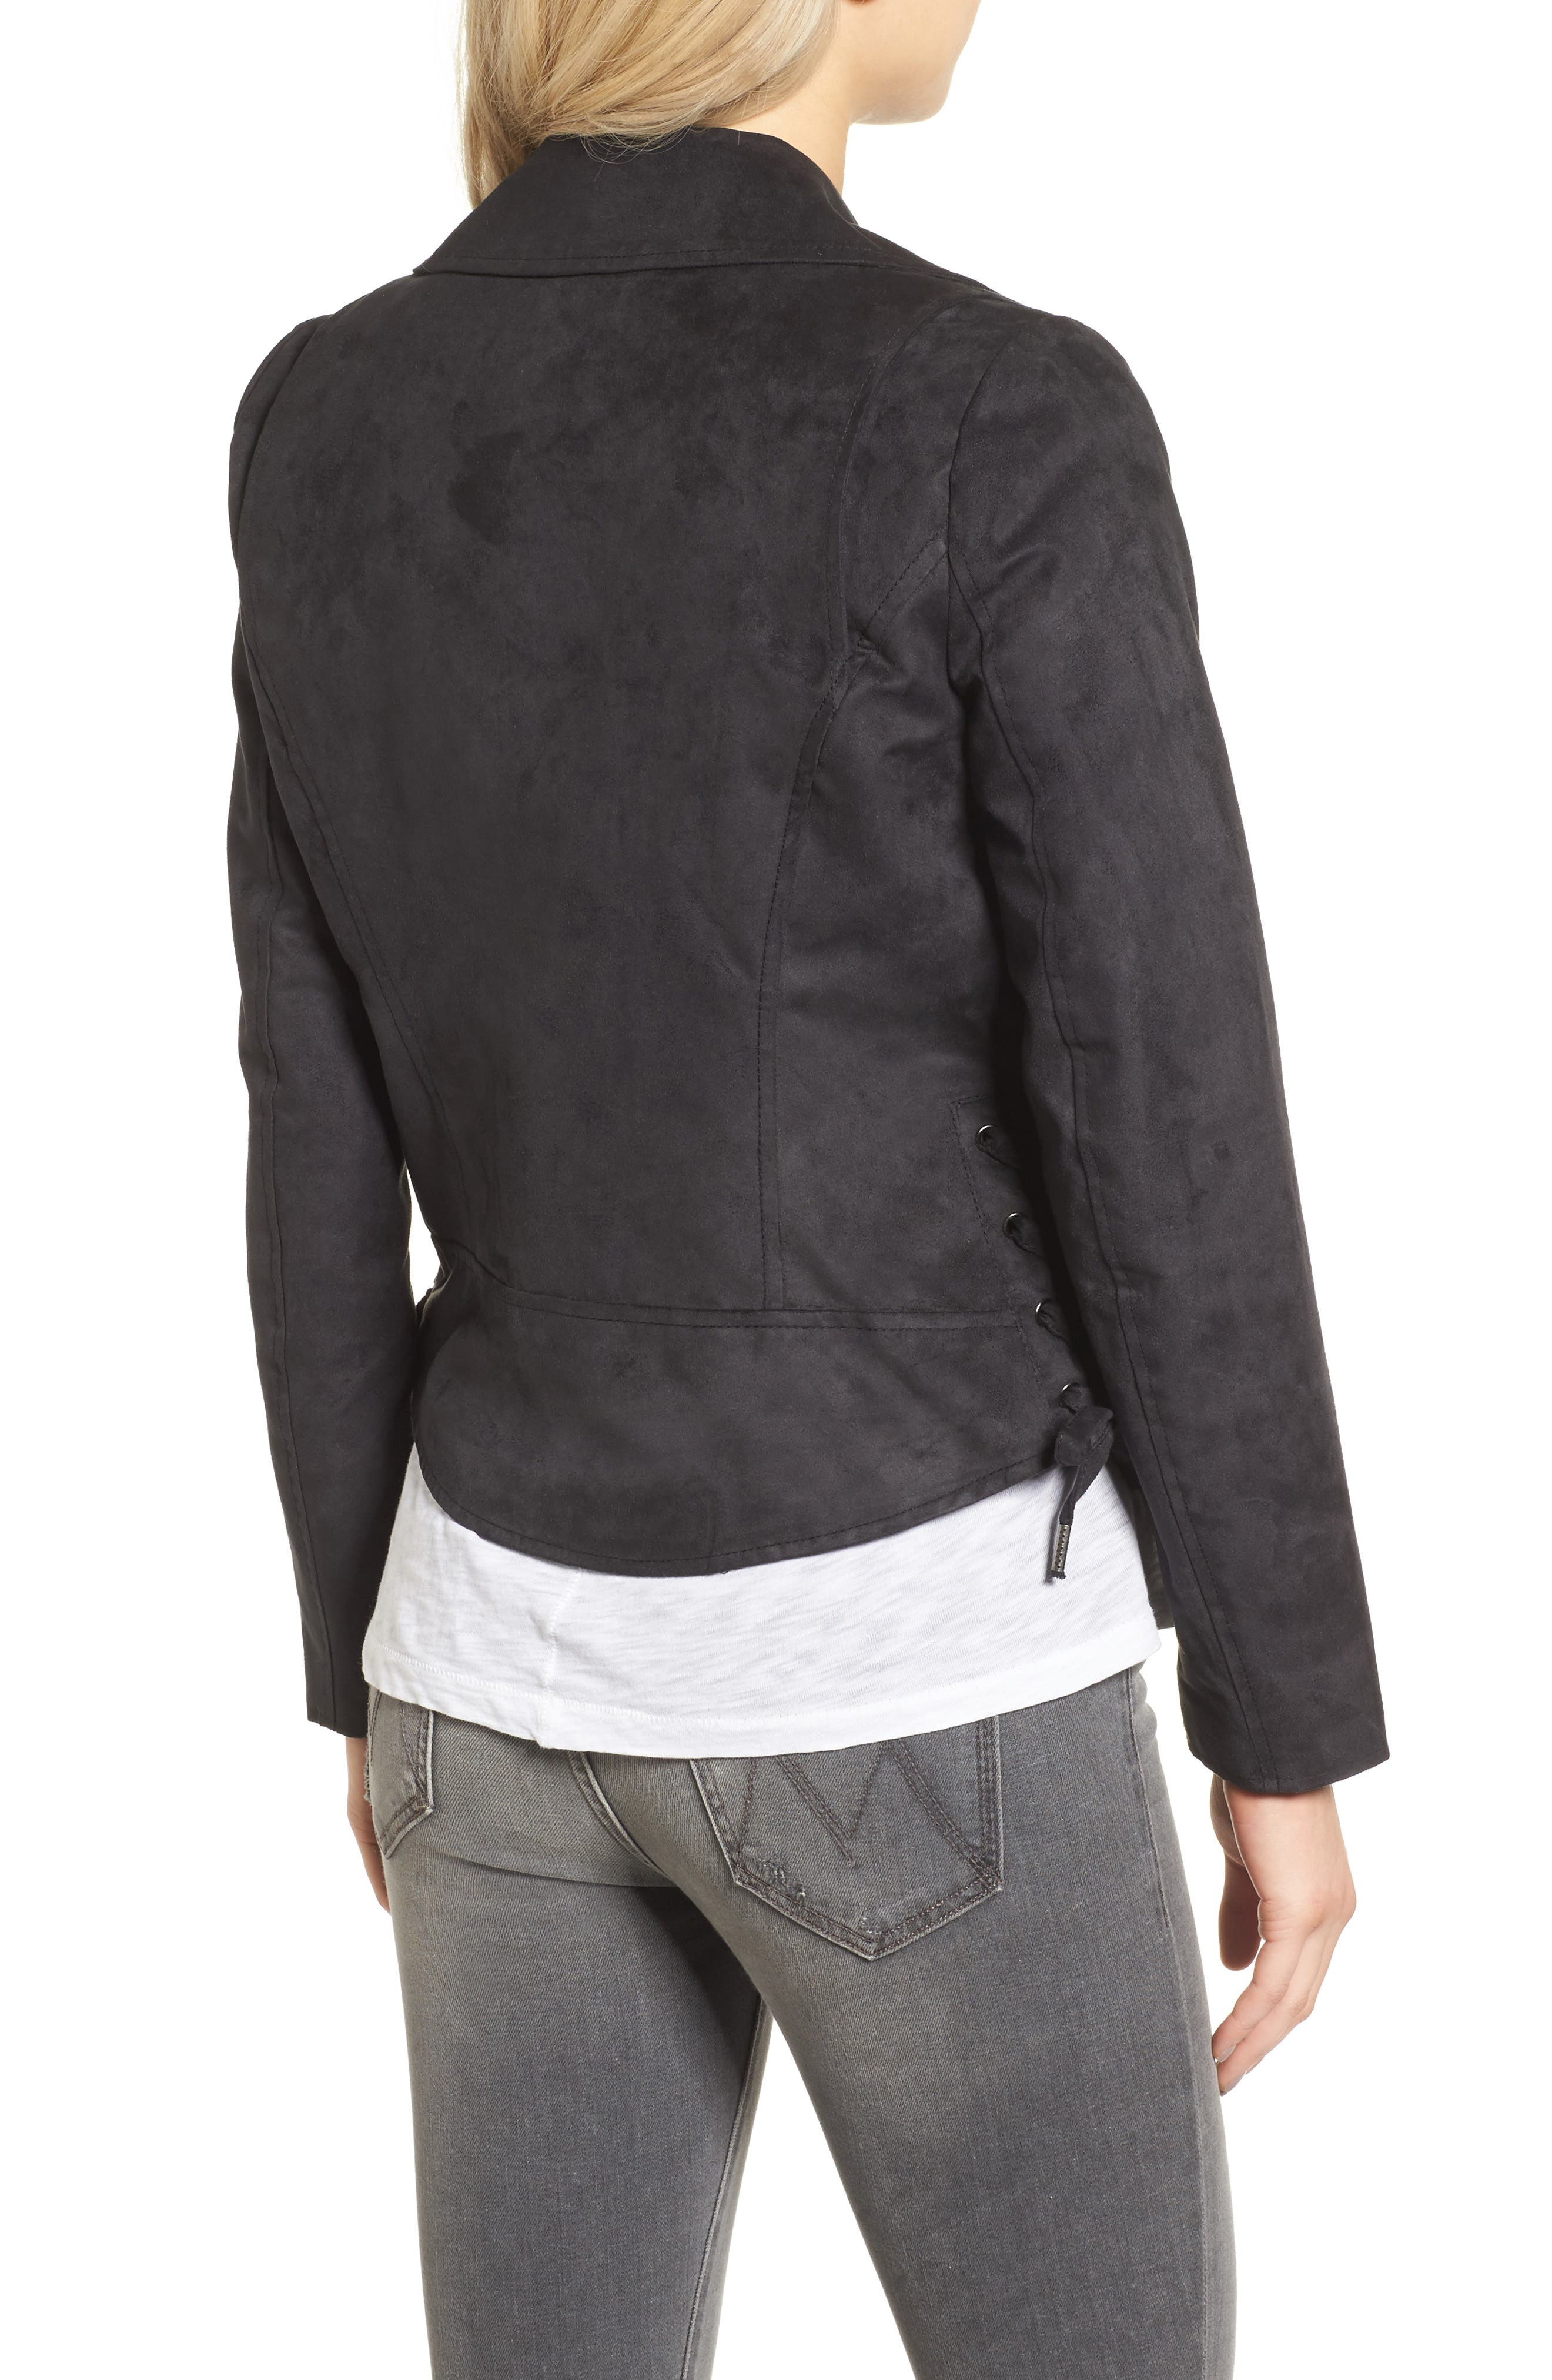 ANDREW MARC,                             Farryn Side Lace Faux Suede Jacket,                             Alternate thumbnail 2, color,                             001